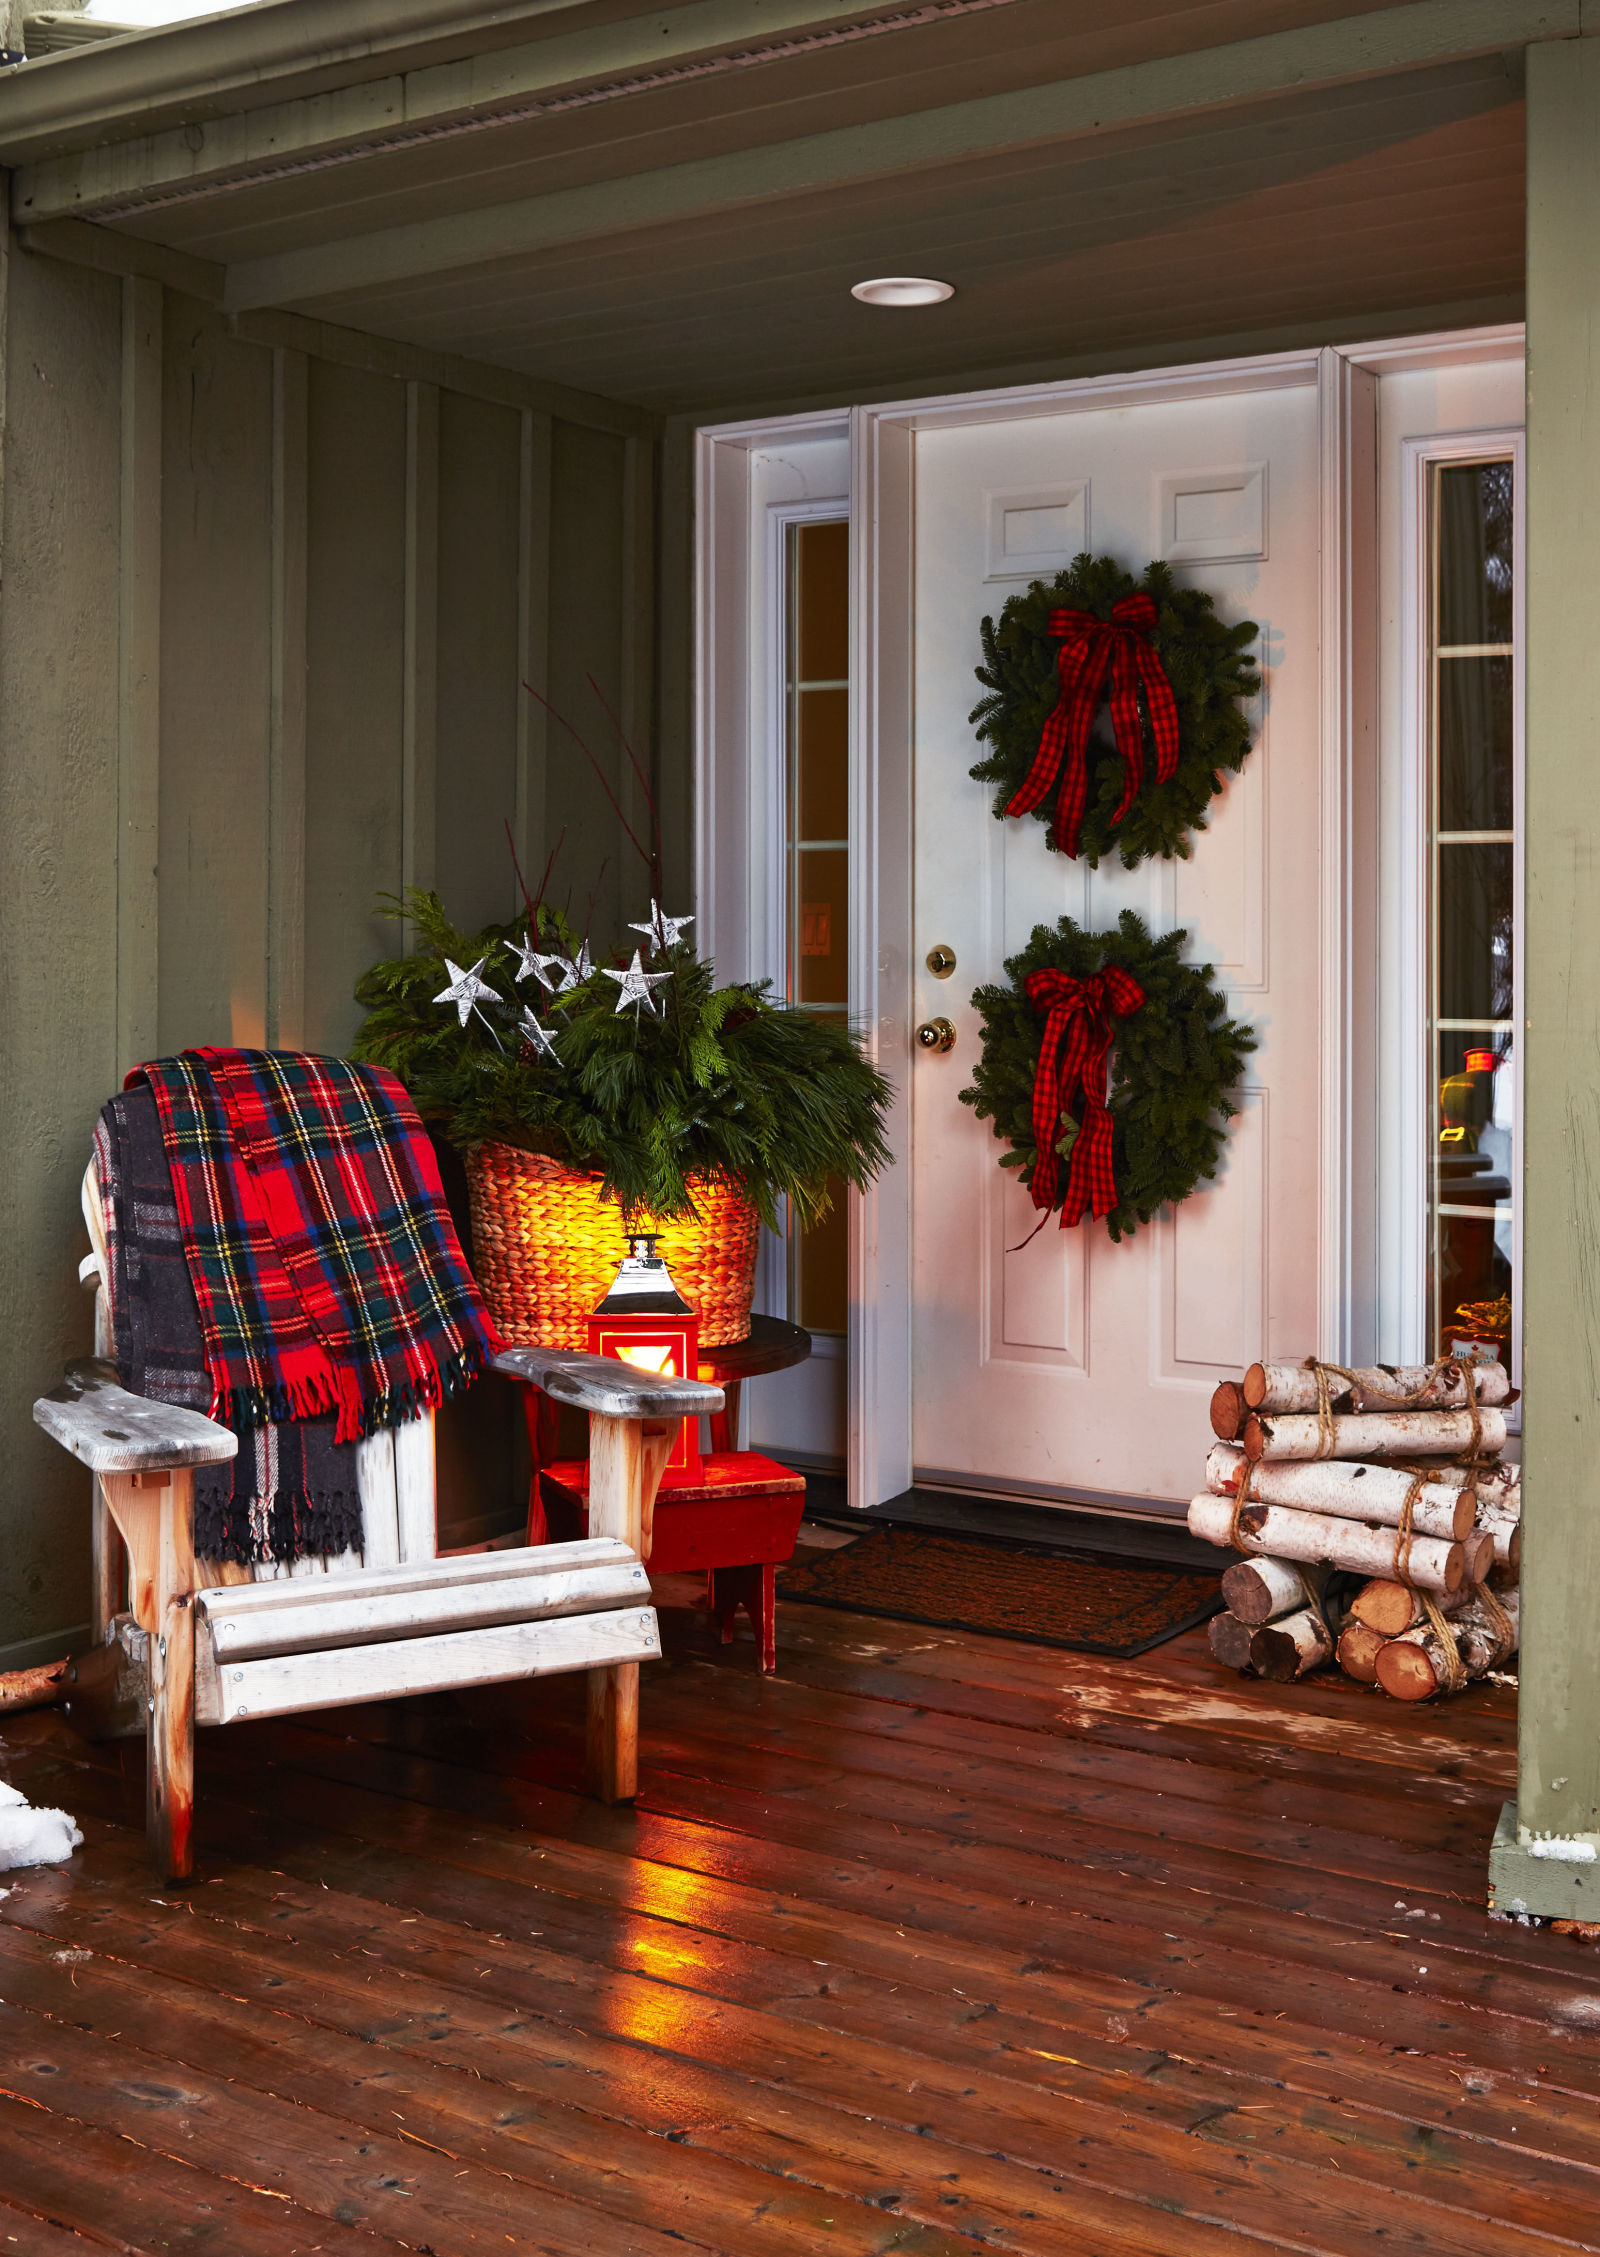 25 Best Outdoor Christmas Decorations - Christmas Yard ... on Patio Decor Ideas id=39463